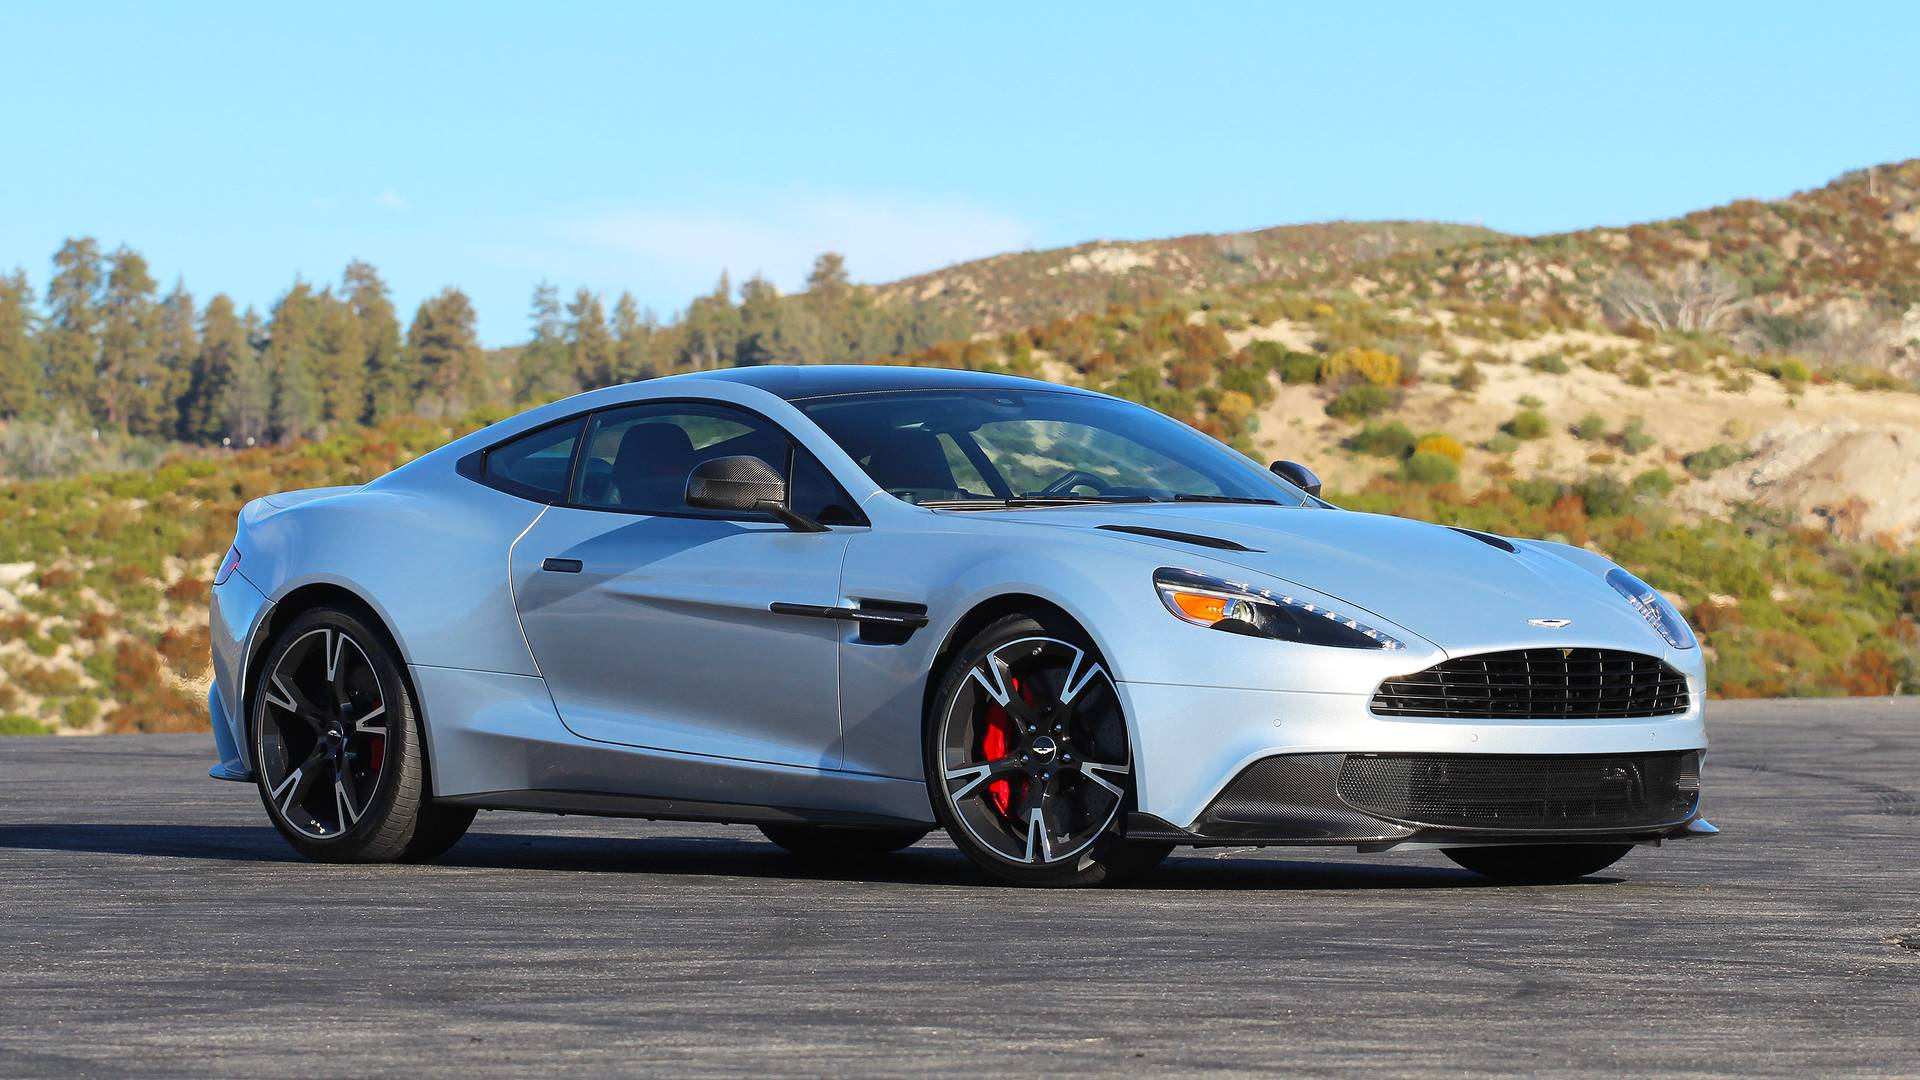 2018 Aston Martin Vanquish S Coupe Review Going Out With A Bang